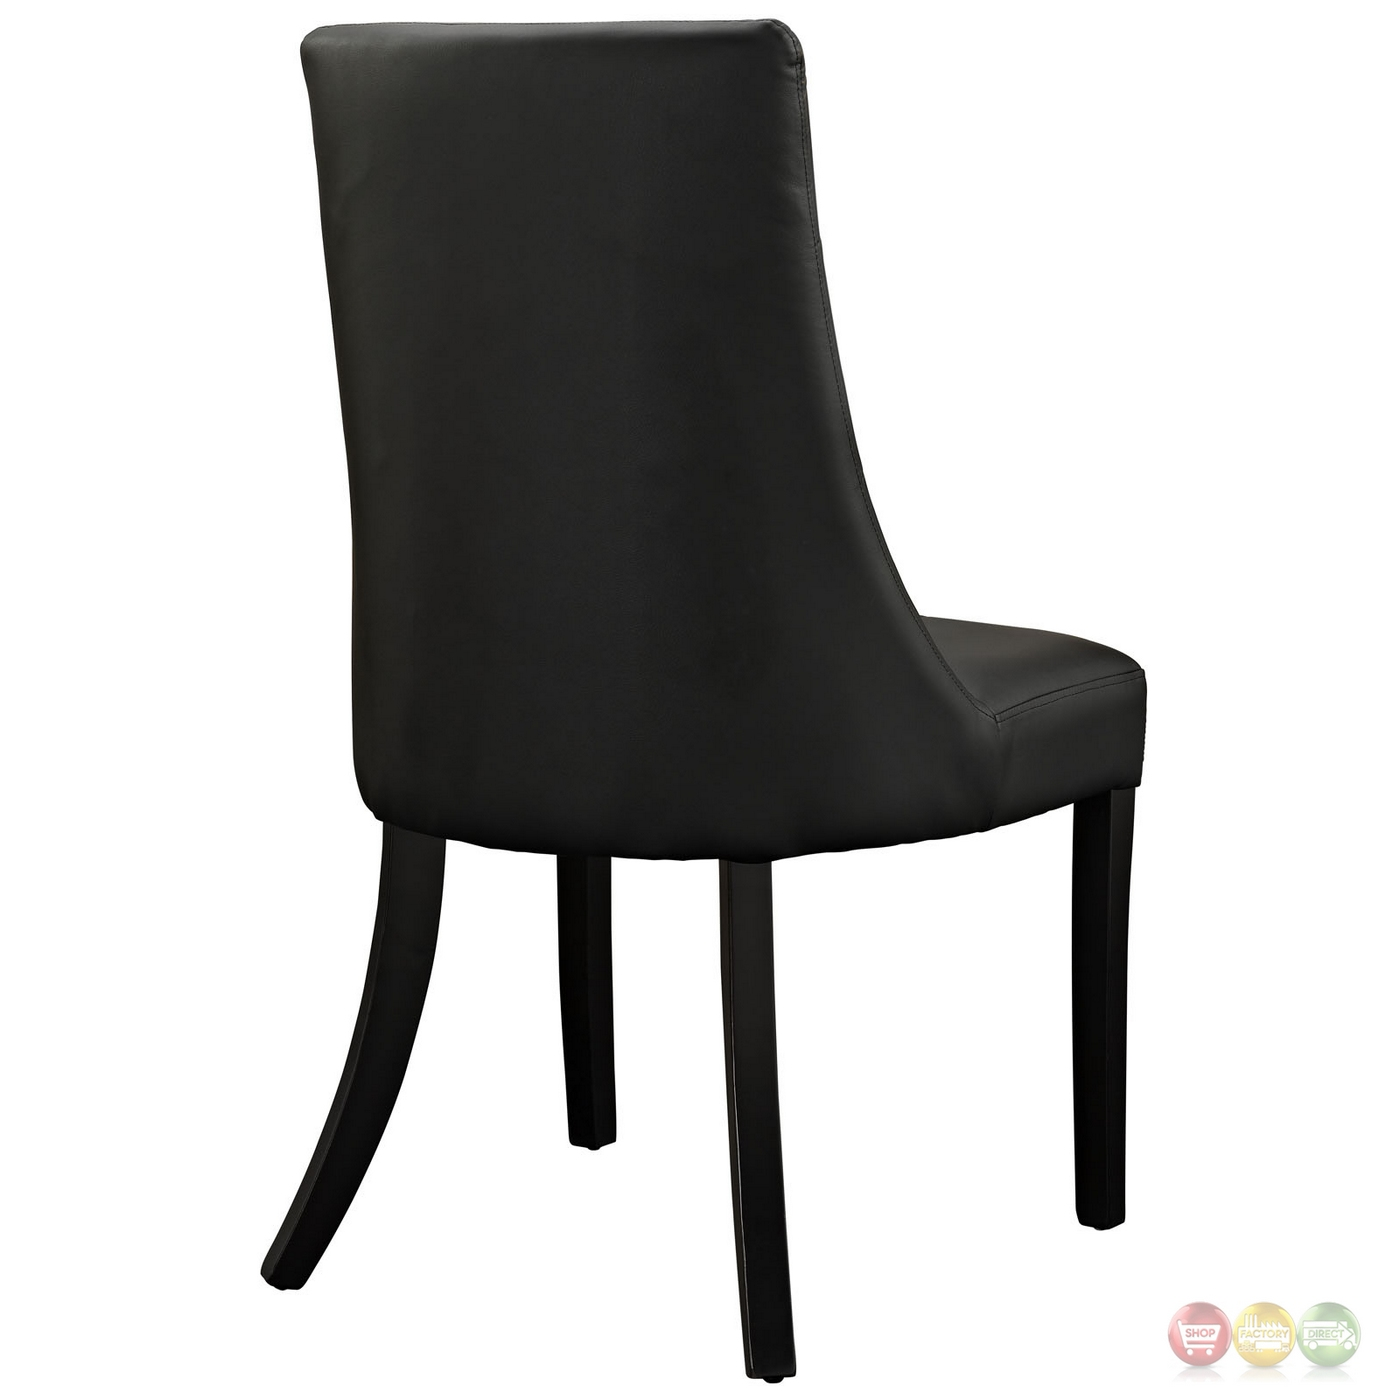 Patterned Chairs Noblesse Contemporary Dining Patterned Vinyl Side Chair Black